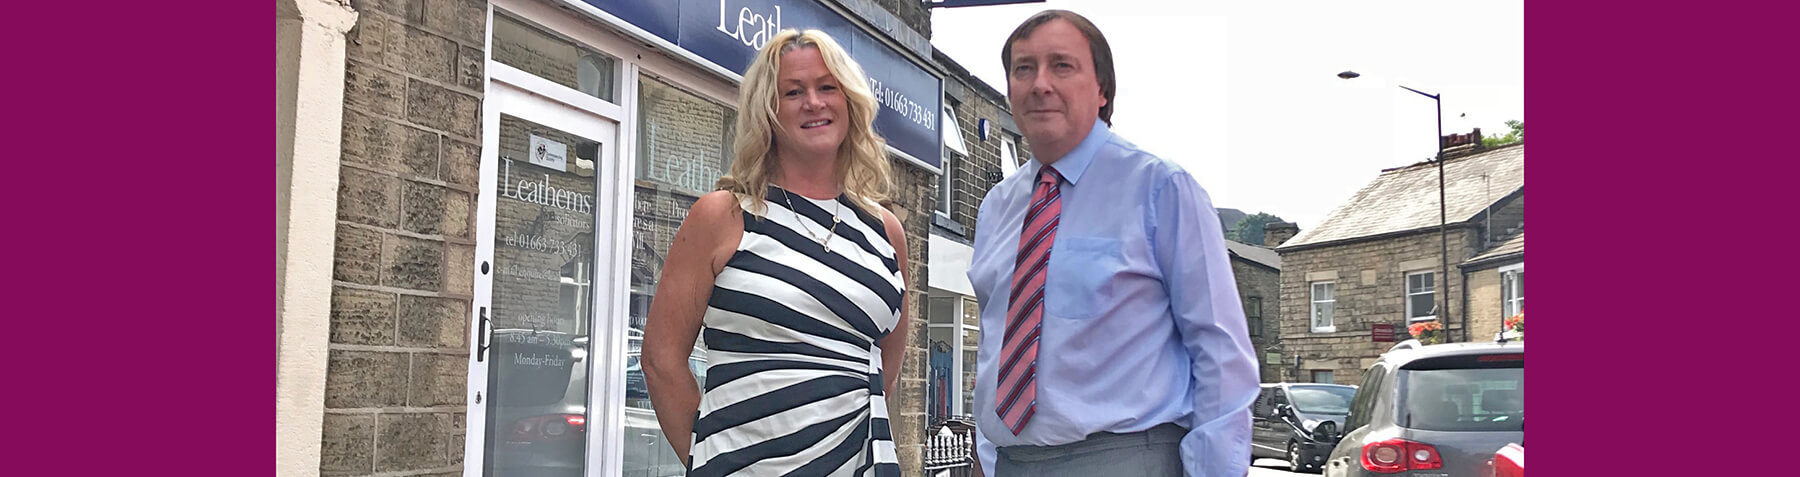 Thorneycroft Solicitors expand further into Derbyshire and High Peak